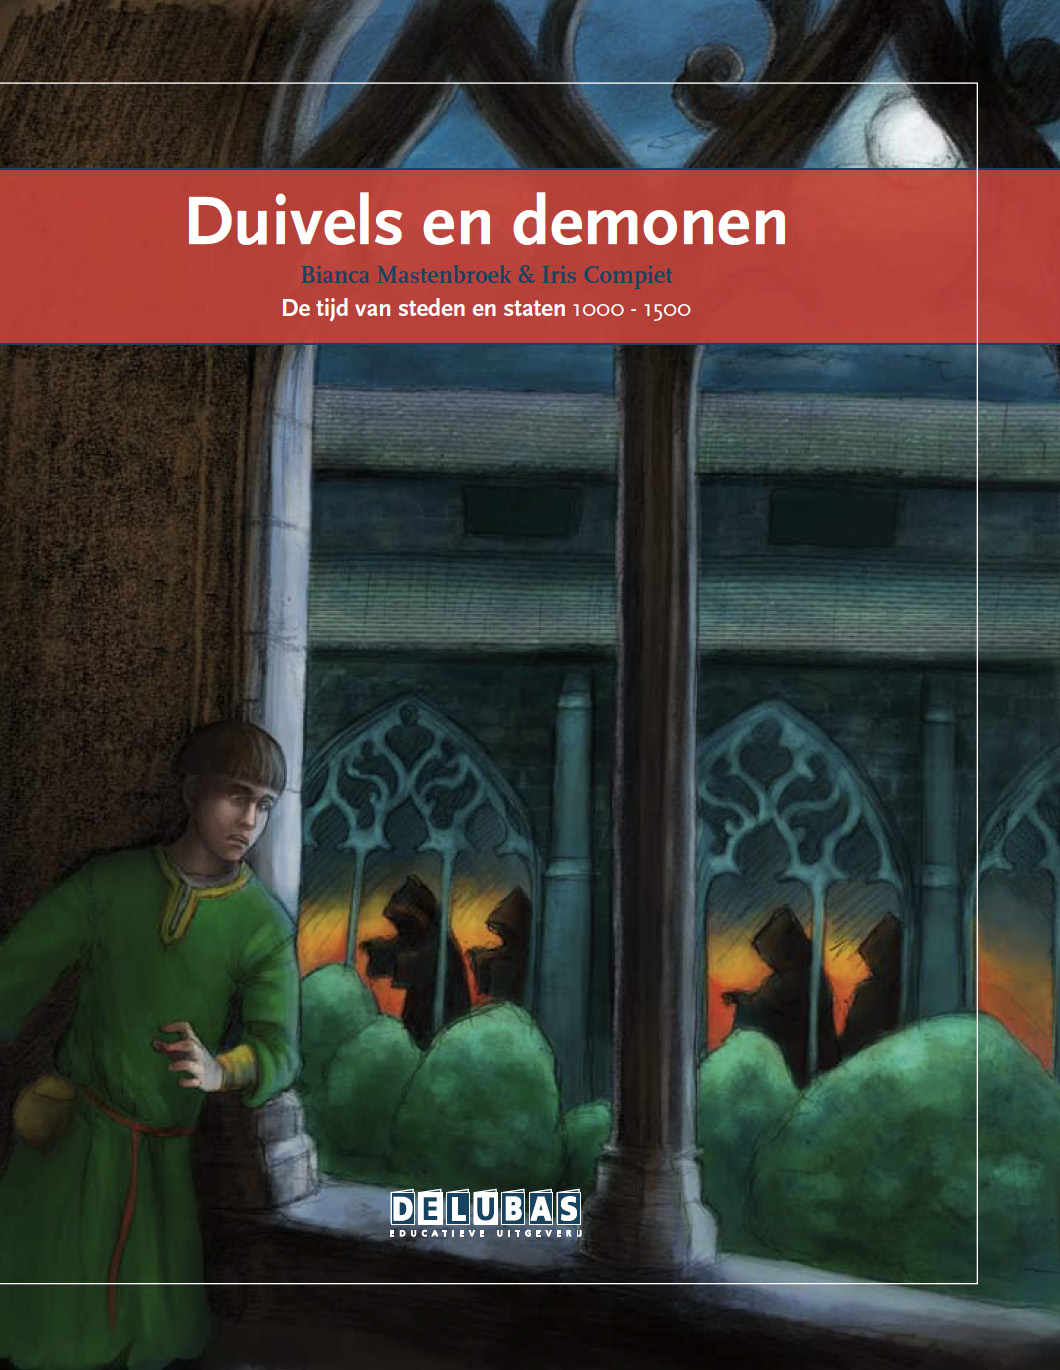 Duivels en demonen